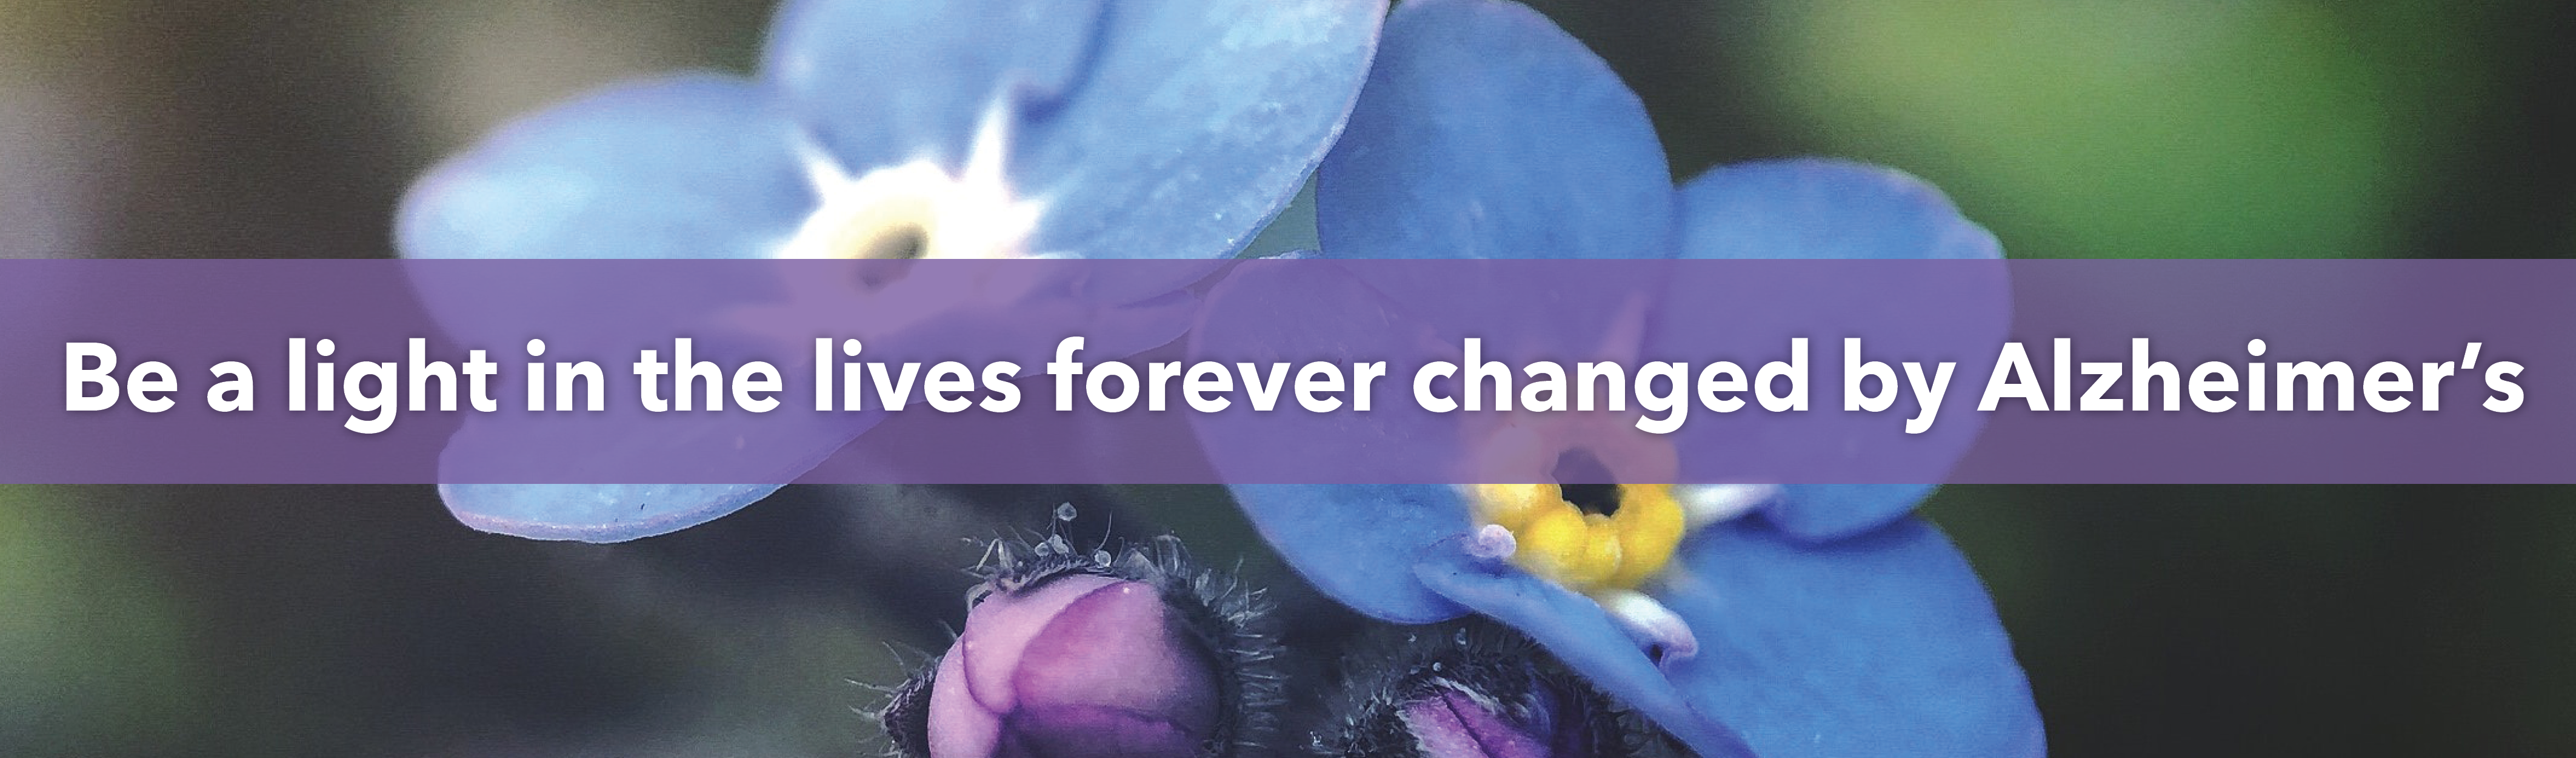 HealthPRO® Heritage commits to Be a light in the lives forever changed by Alzheimer's